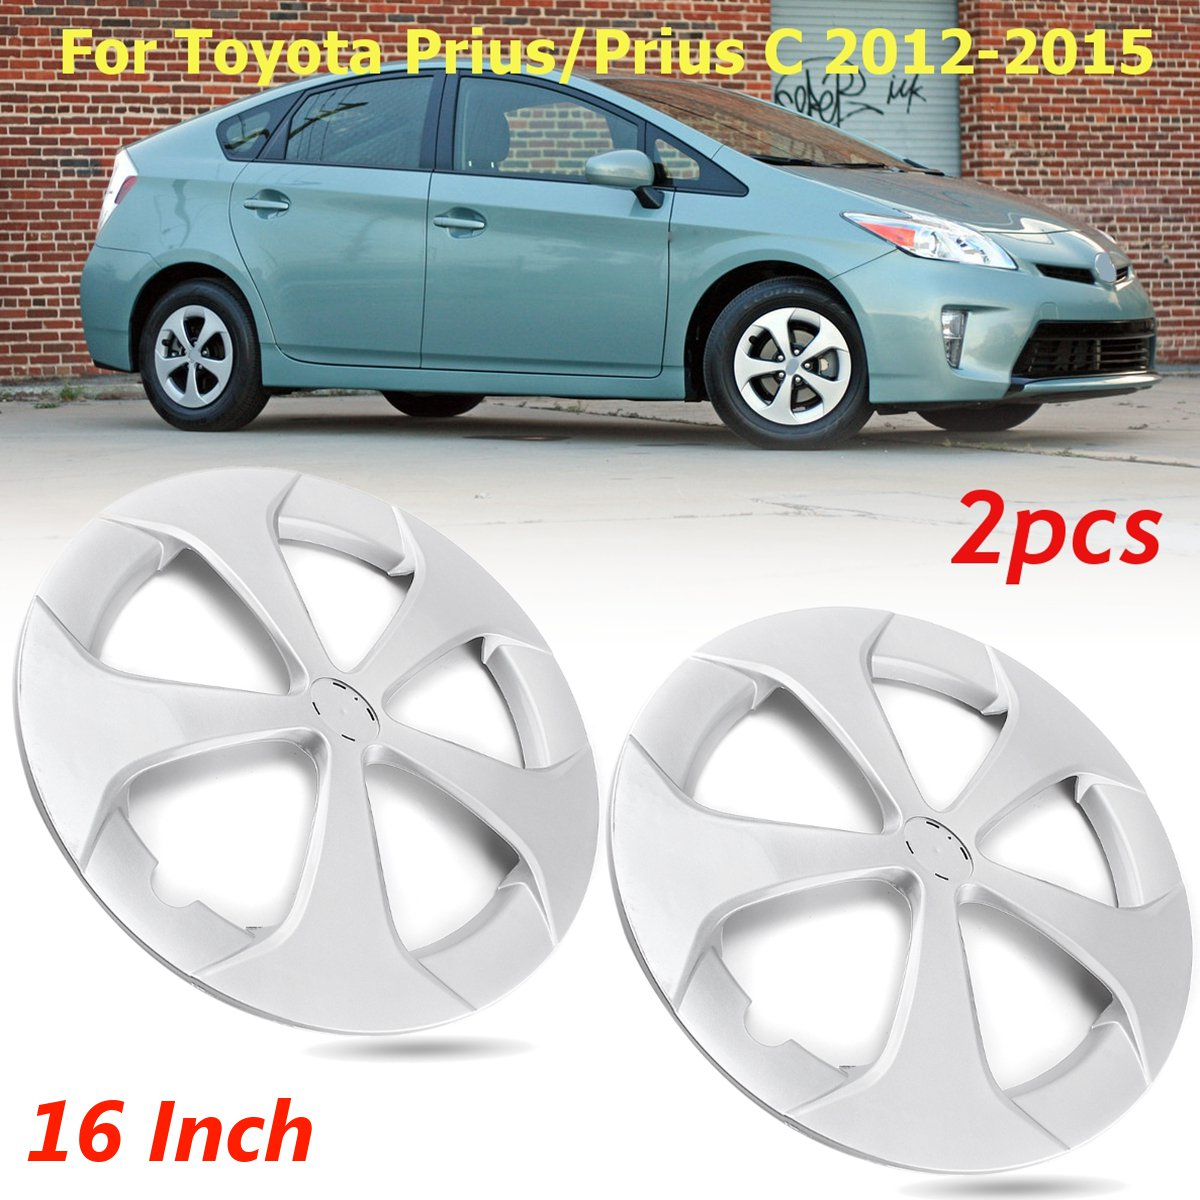 1 / 2 pcs for Toyota Prius/Prius C 2012 2013 2014 2015 16 5-spoke Silver  Hub caps Wheel Cover 4260247060 570-61167